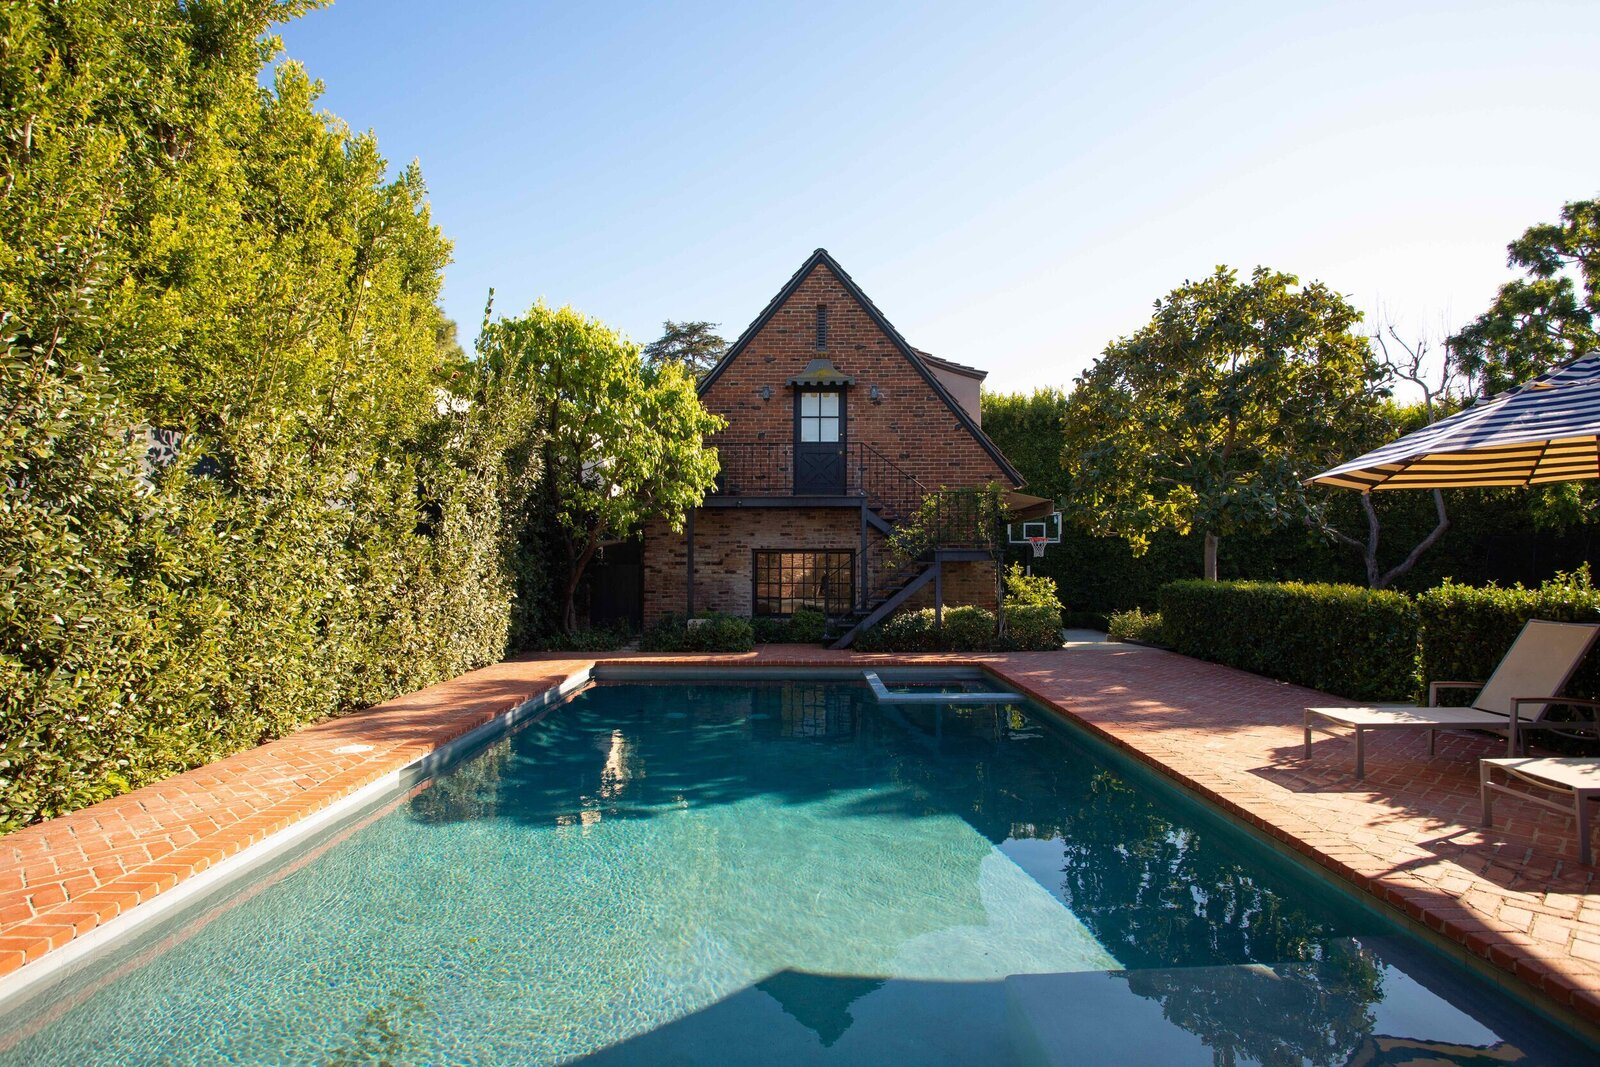 Thick vegetation surrounds the backyard, creating a tranquil city escape—idyllic for small- or large-scale entertaining. Beyond the pool is the property's two-story guesthouse.  Photo 13 of 15 in A Posh Tudor-Style Home in L.A. Seeks $7M